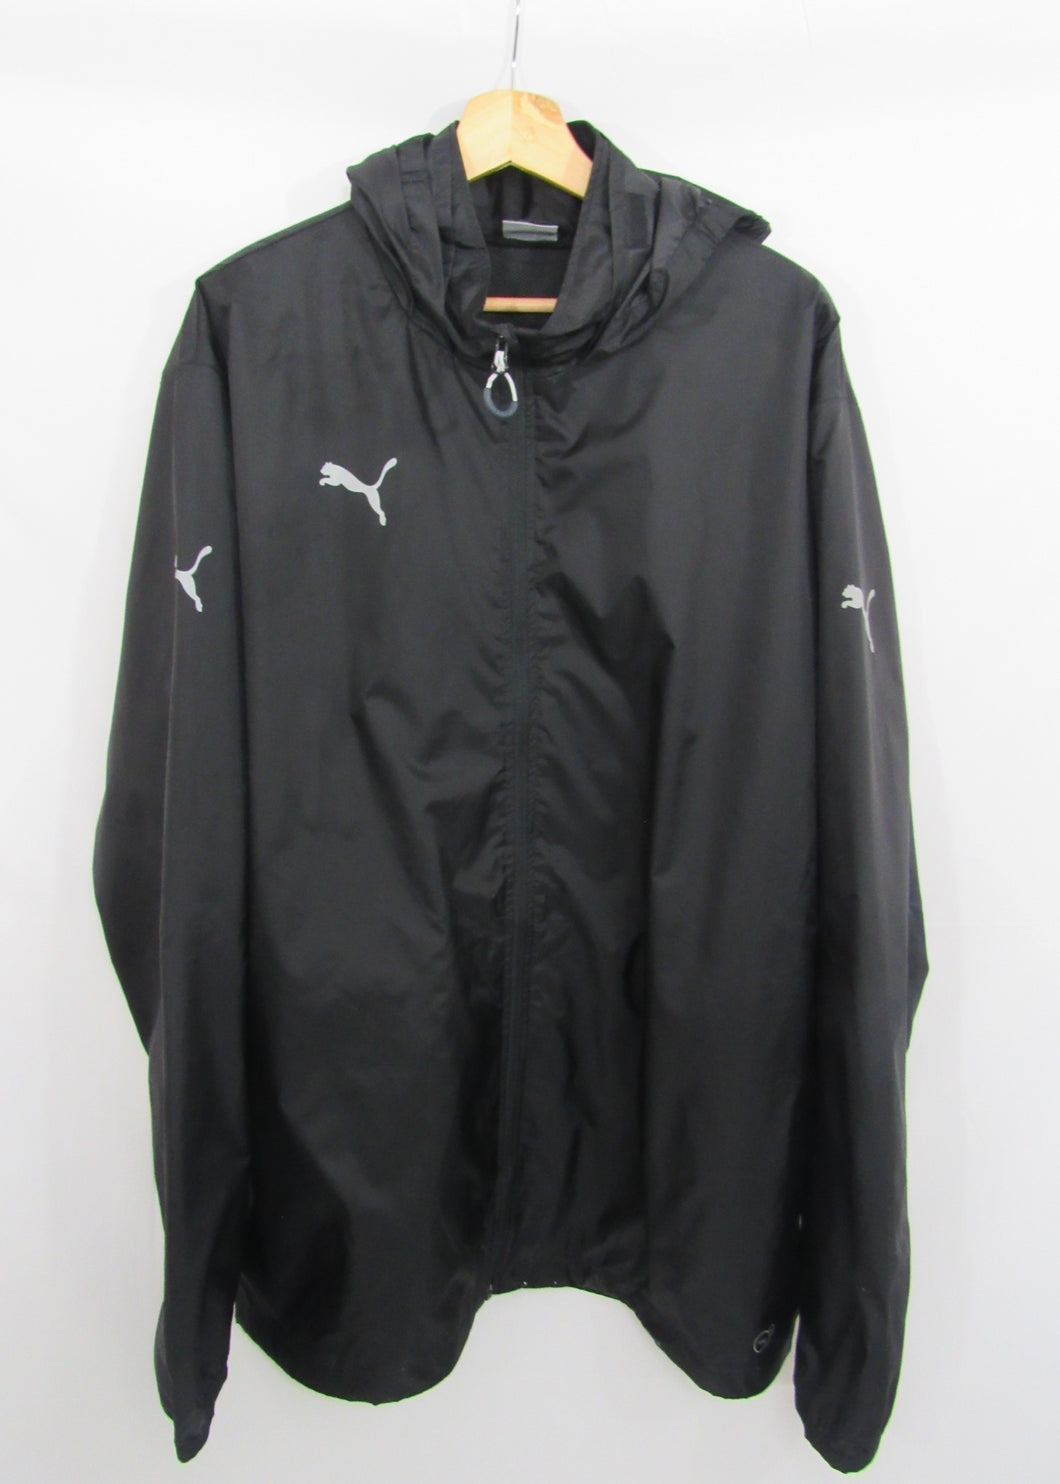 Retro Puma Black Jacket 80s-90s